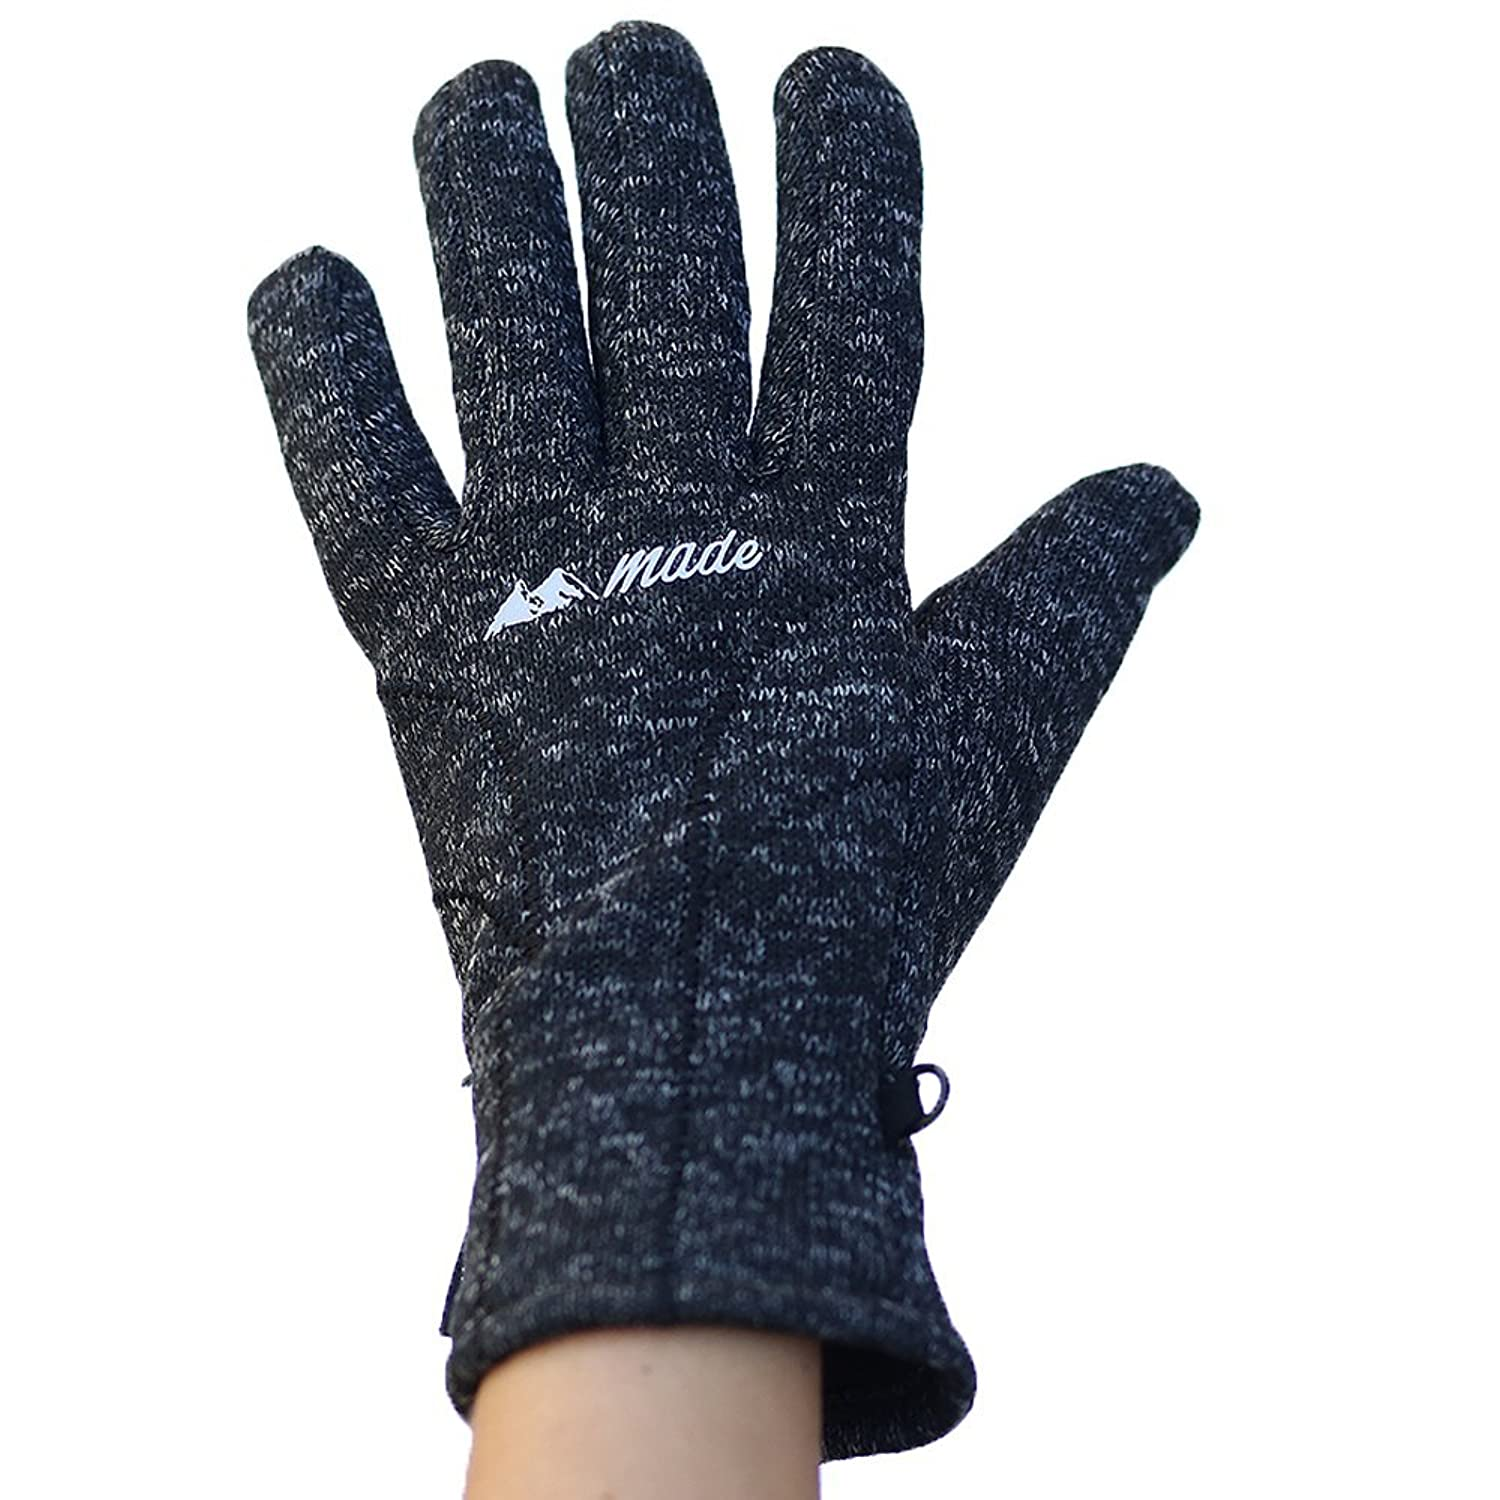 Mountain Made Knit Gloves For Men and Women